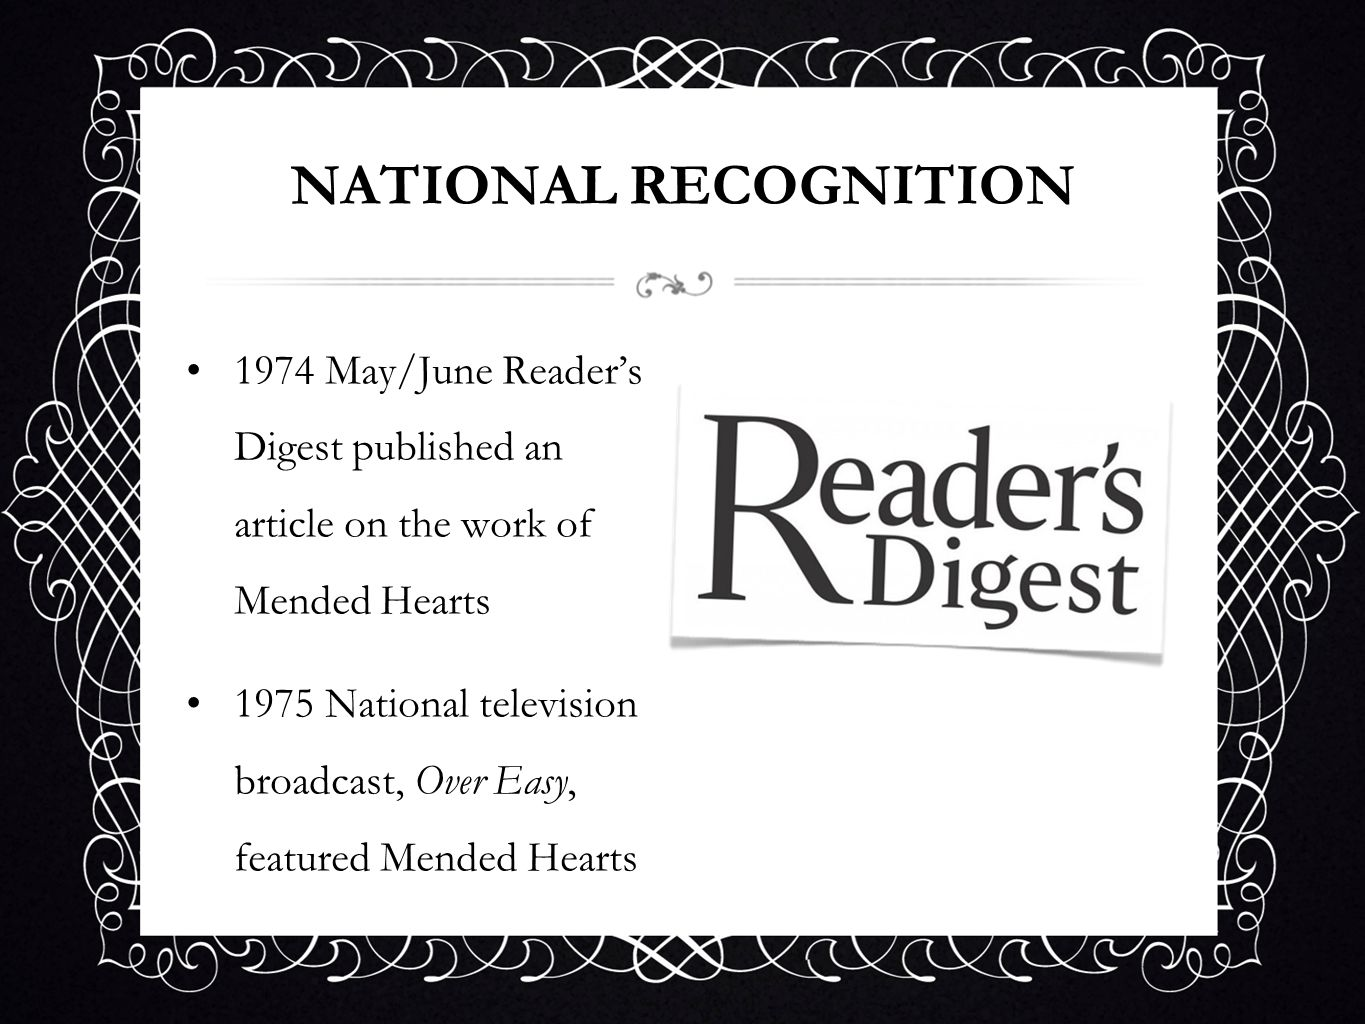 NATIONAL RECOGNITION1974 May/June Reader's Digest published an article on the work of Mended Hearts.